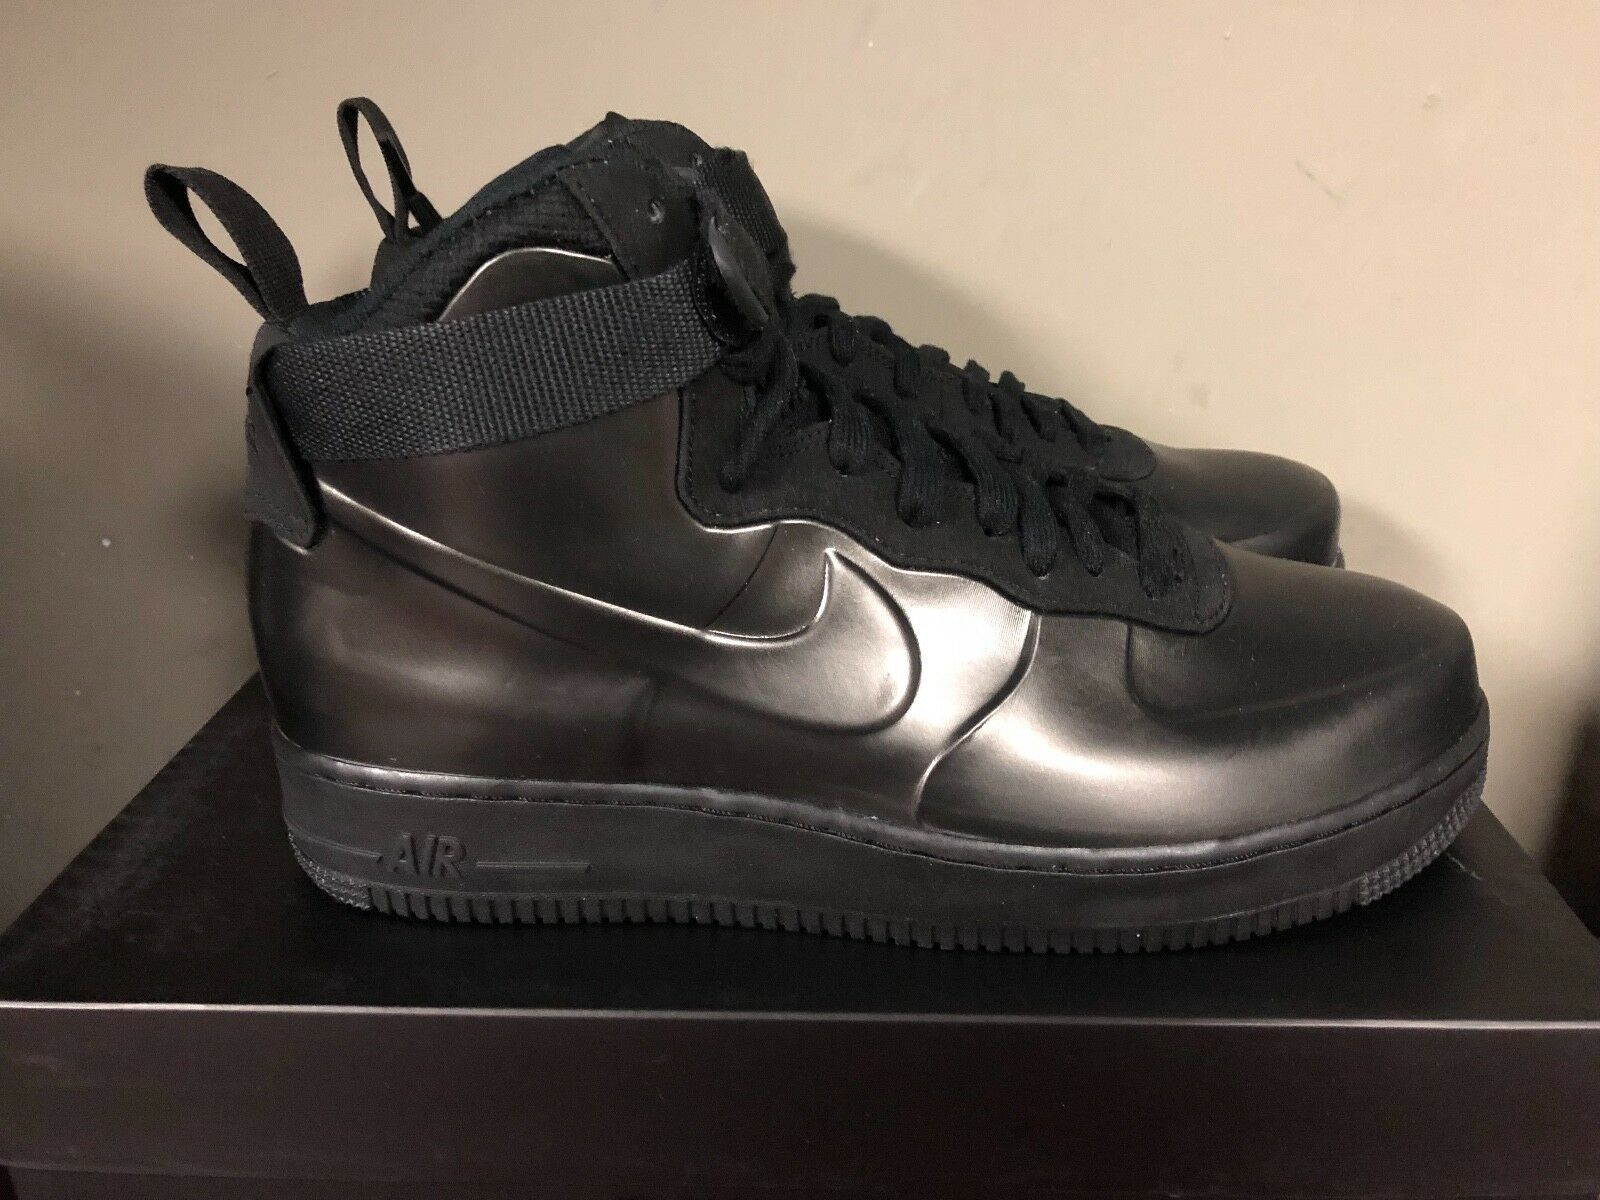 Nike air force 1 foamposite tazza tre neri è ah6771-001 nuovo 2018